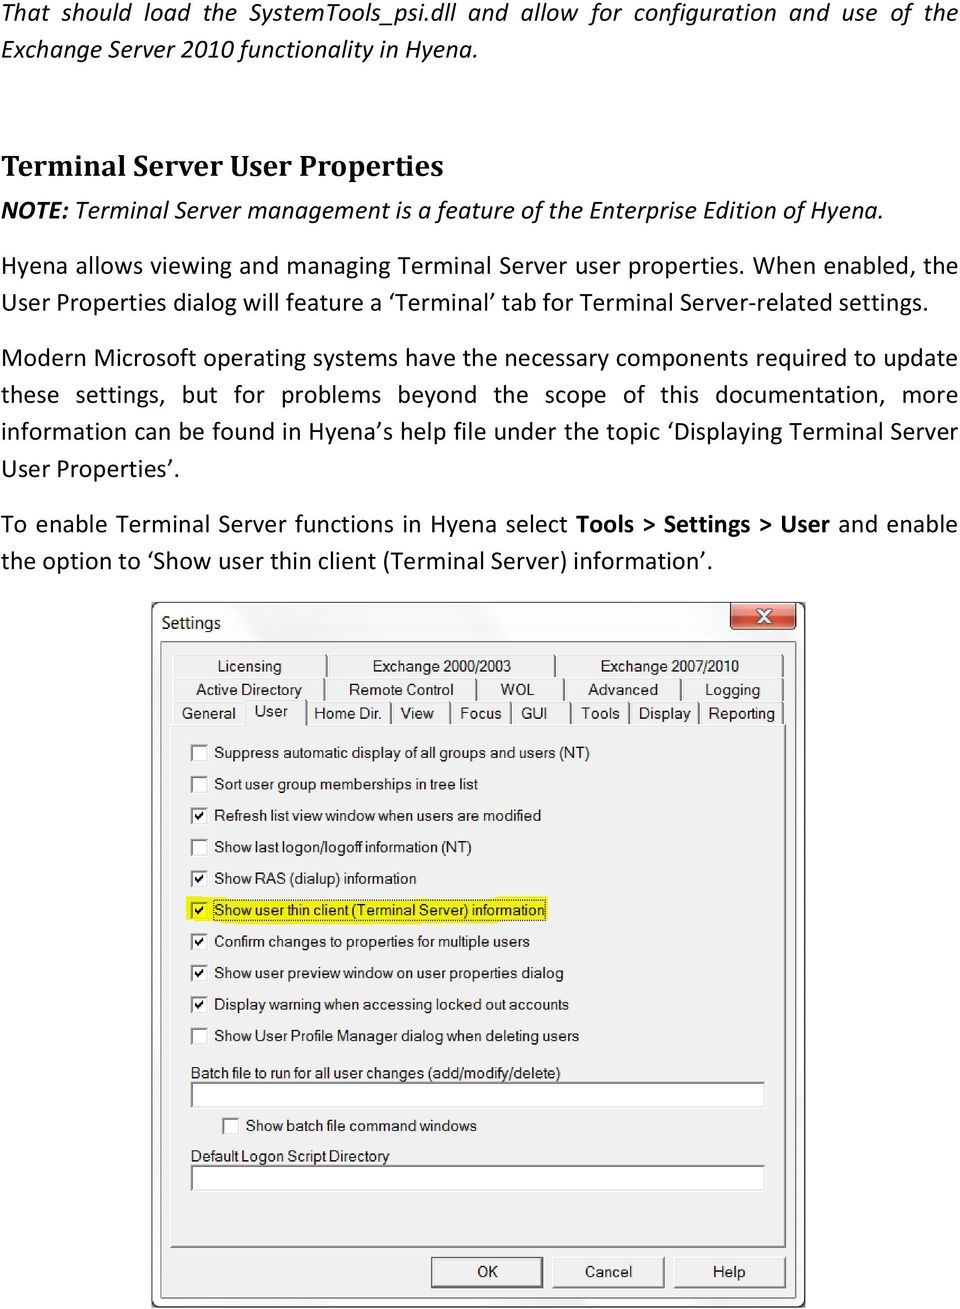 When enabled, the User Properties dialog will feature a Terminal tab for Terminal Server-related settings.